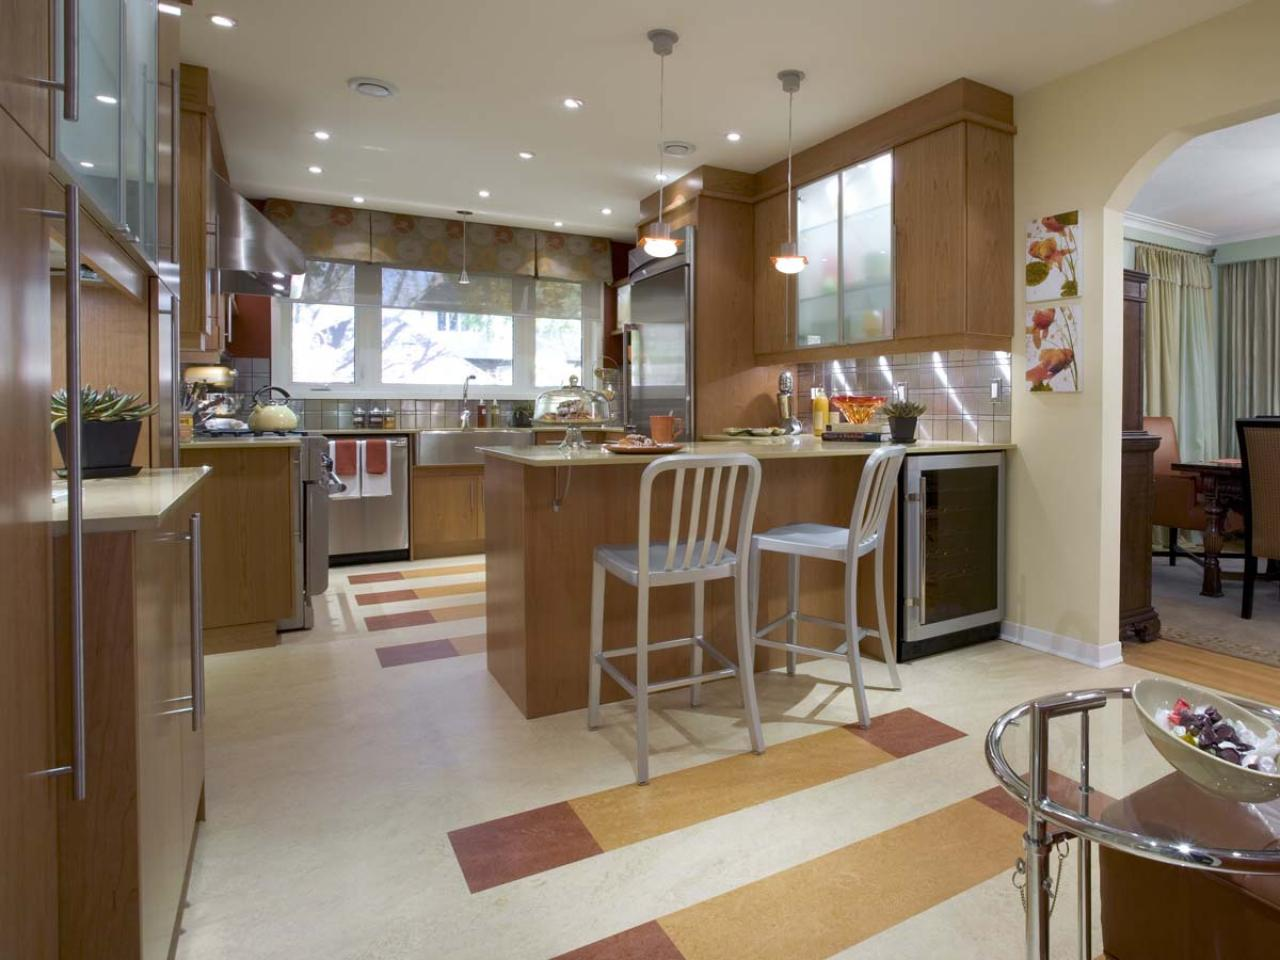 candice olson kitchen design tips photo - 6